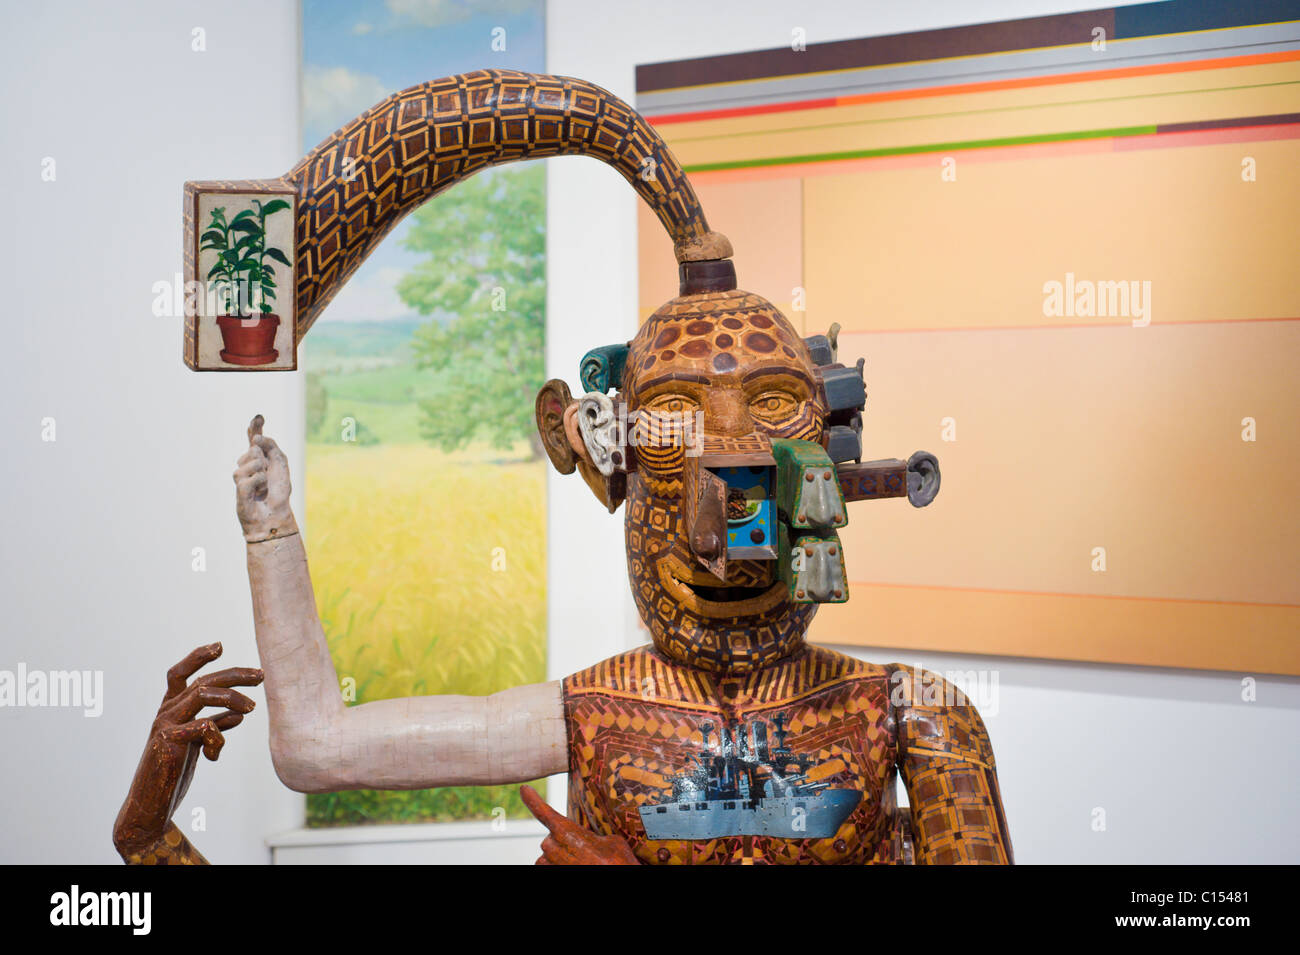 'Lucky the Immortal' by Michael Ferris, Jr. - Anderson Museum of Contemporary Art in Roswell, New Mexico. - Stock Image